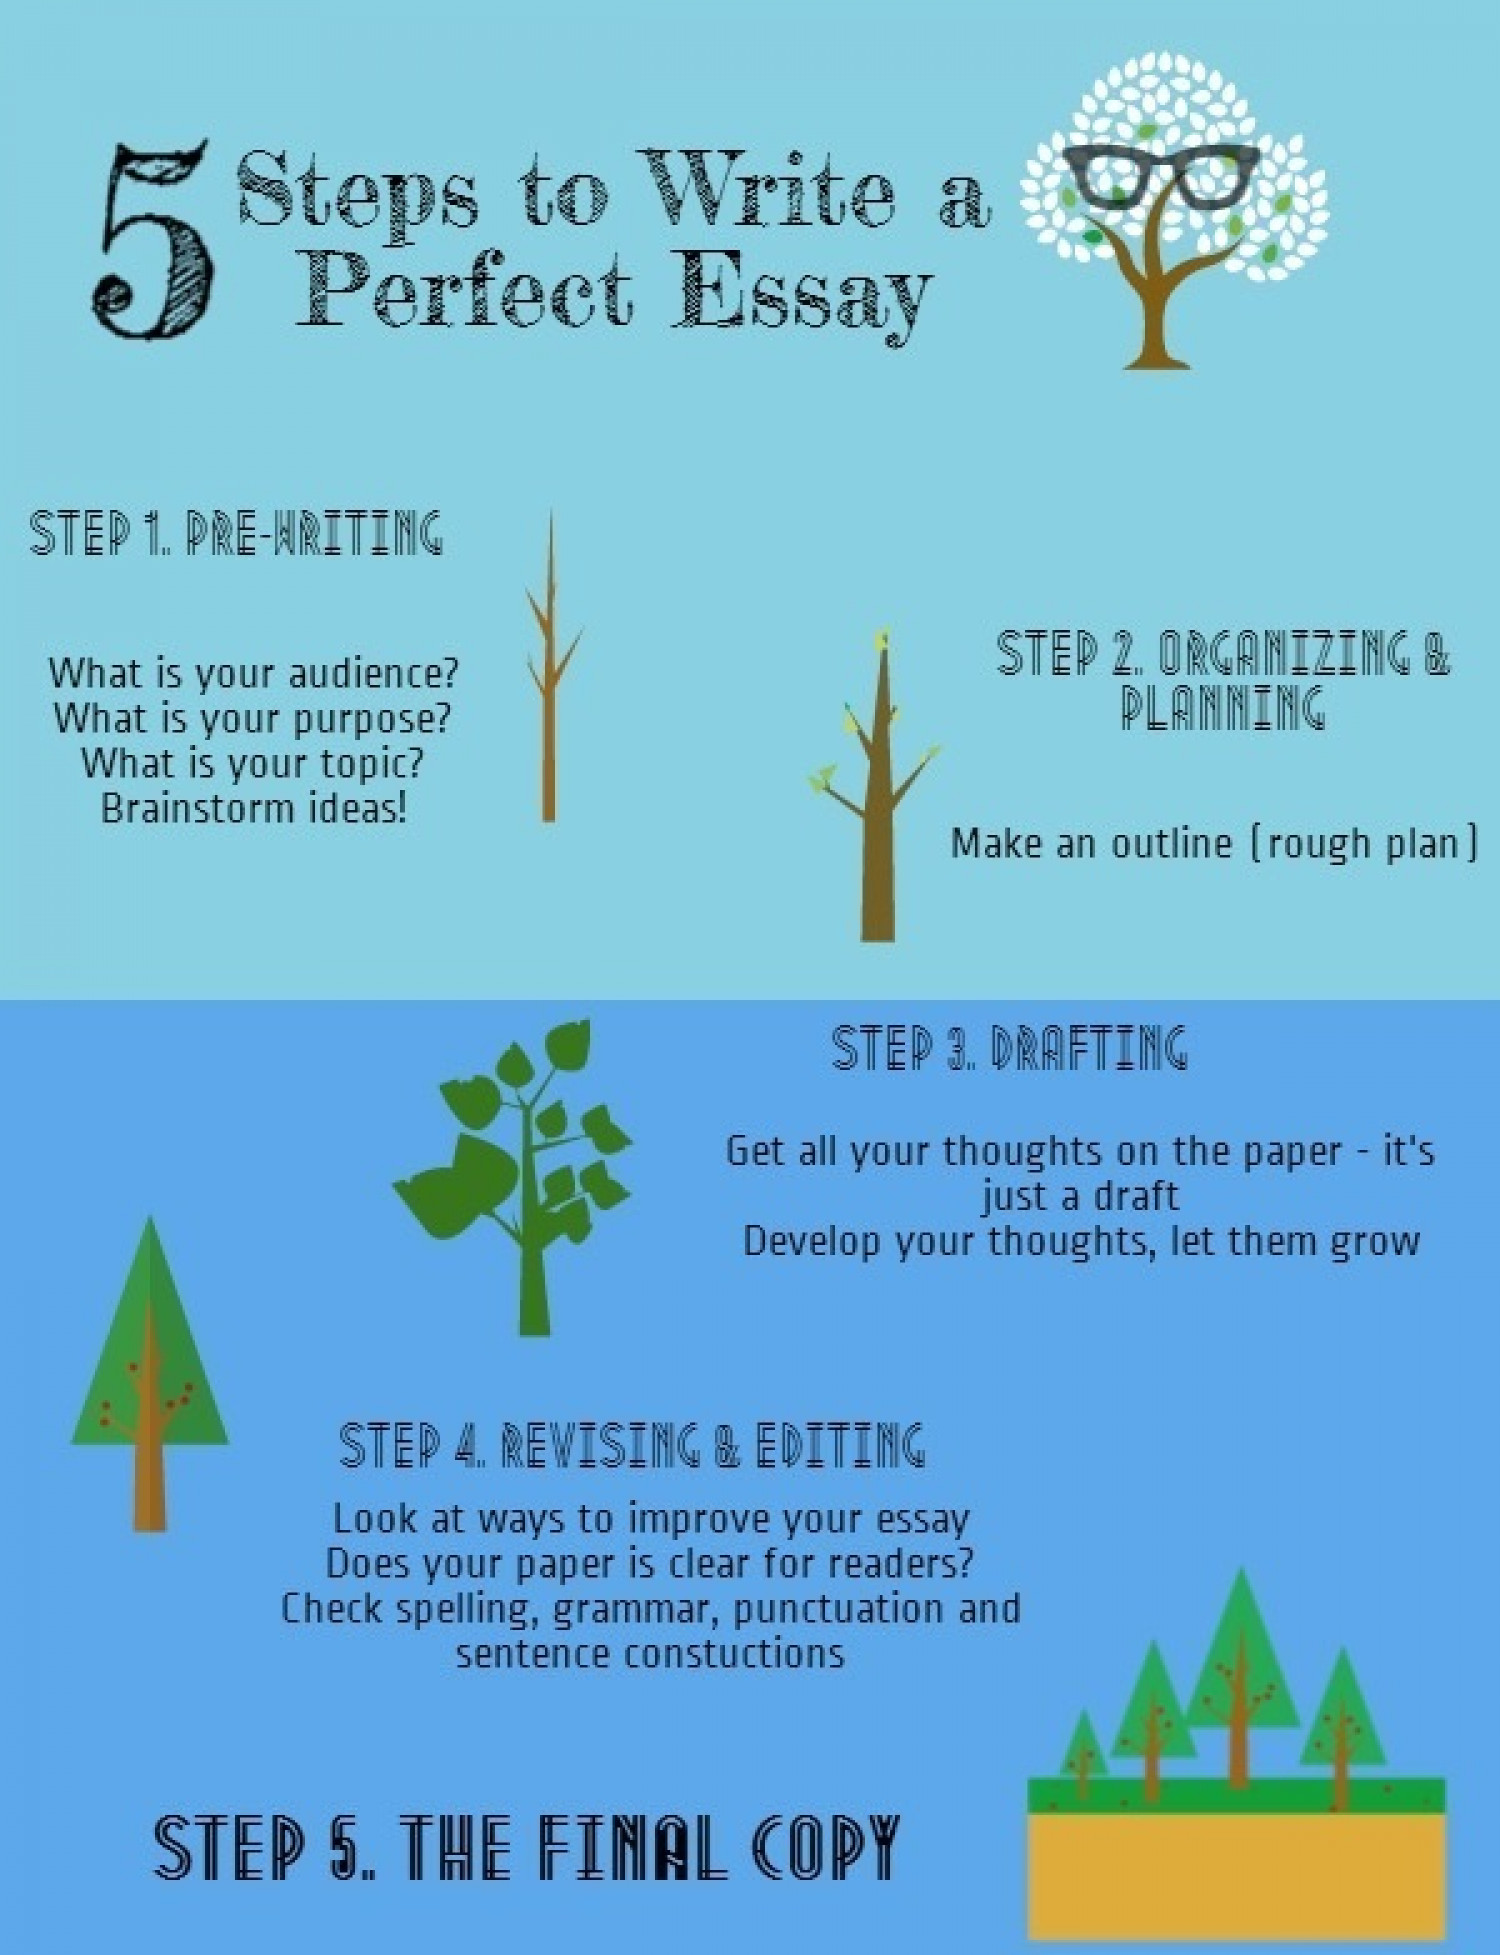 como hacer resume un popular dissertation methodology editing site how to write a good essay resume how to write essay about myself com regard